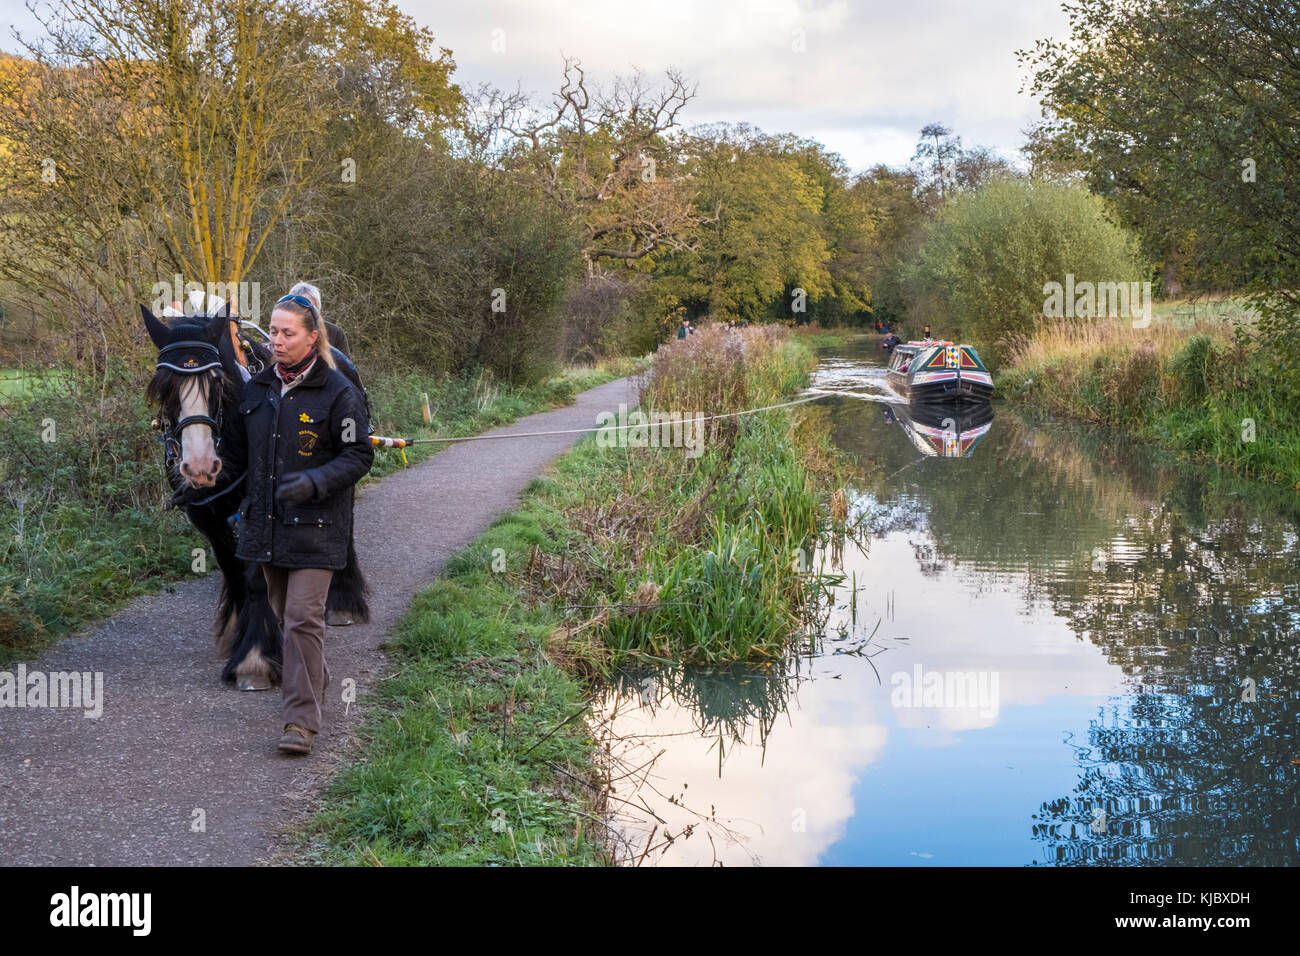 Horse drawn narrow boat. Woman guiding a horse on a towpath while pulling a narrowboat on the Cromford Canal, Derbyshire, - Stock Image